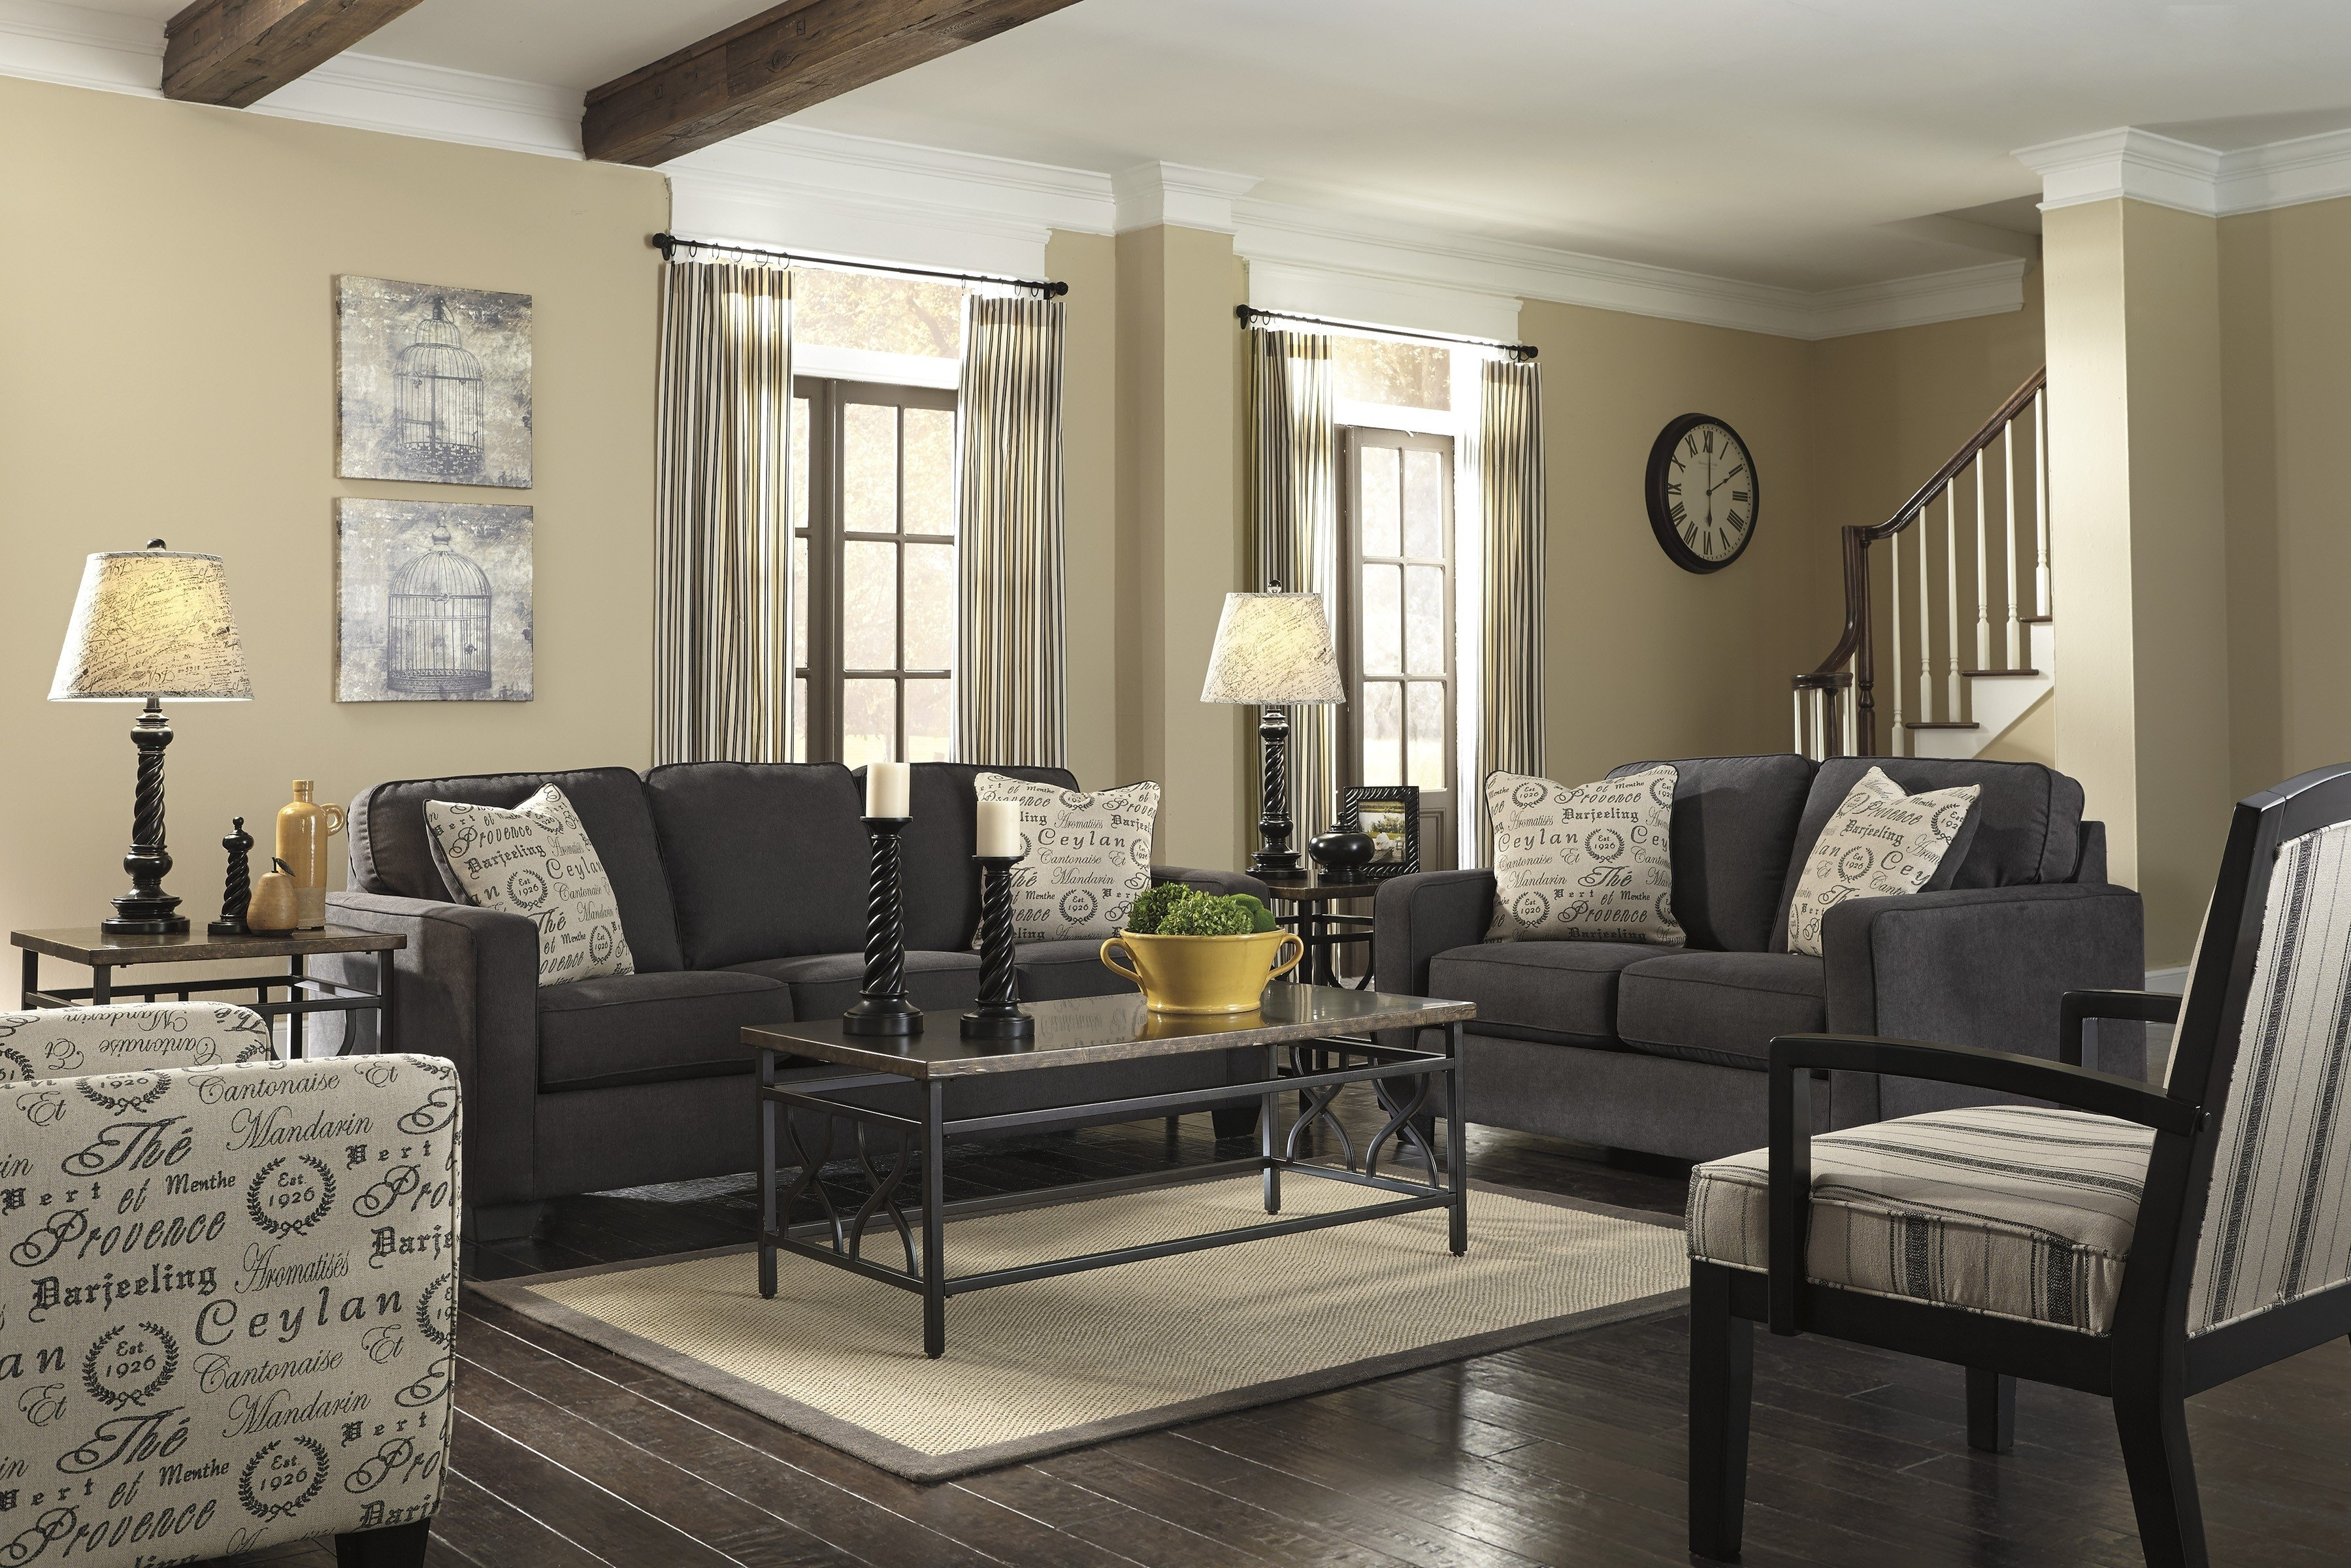 10 Best Gray Couch Living Room Ideas couch astounding dark gray couch hd wallpaper images grey sleeper 2020